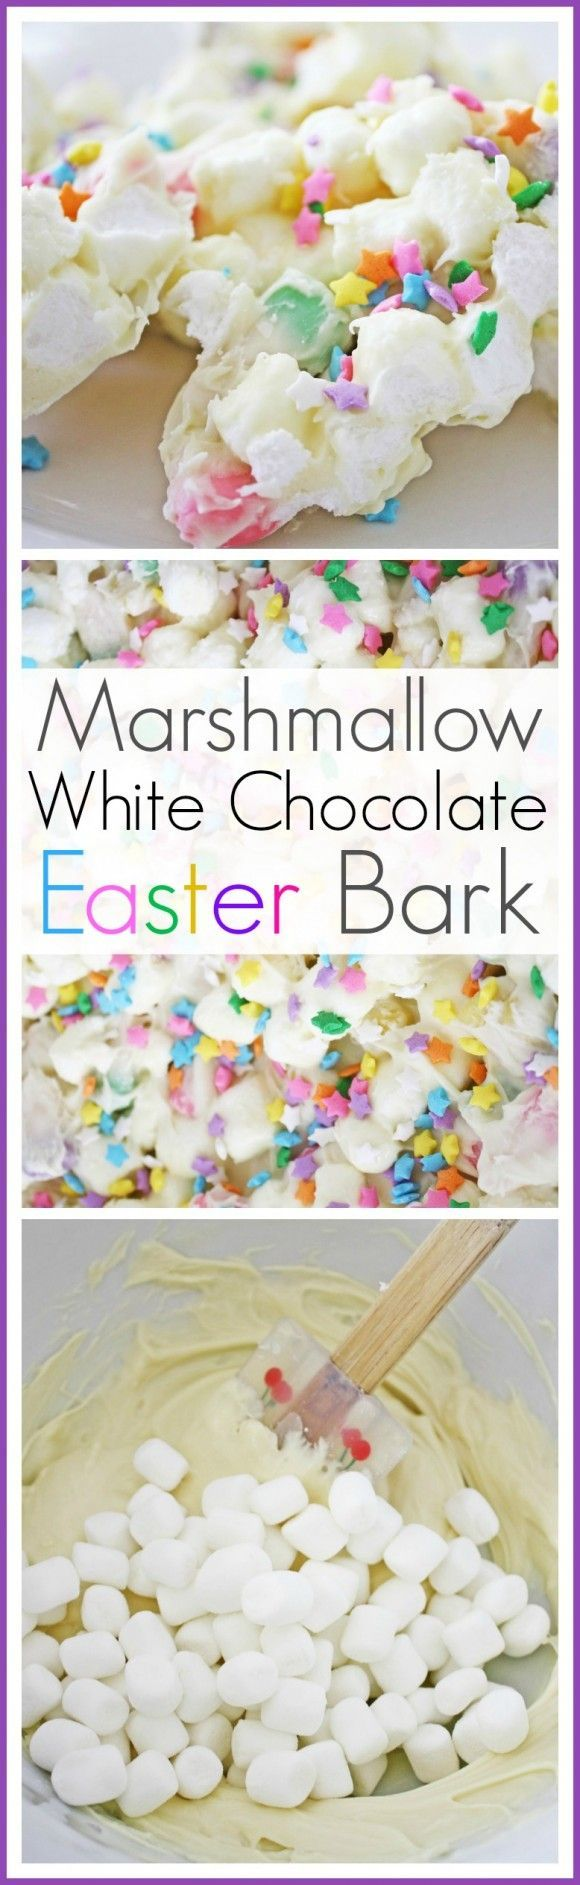 Marshmallow White Chocolate Bark Recipe. This will work great at your Easter brunch or on a spring dessert table. Also, easy to give out as a party favor, just wrap it up cute! See more party ideas at http://catchmyparty.com